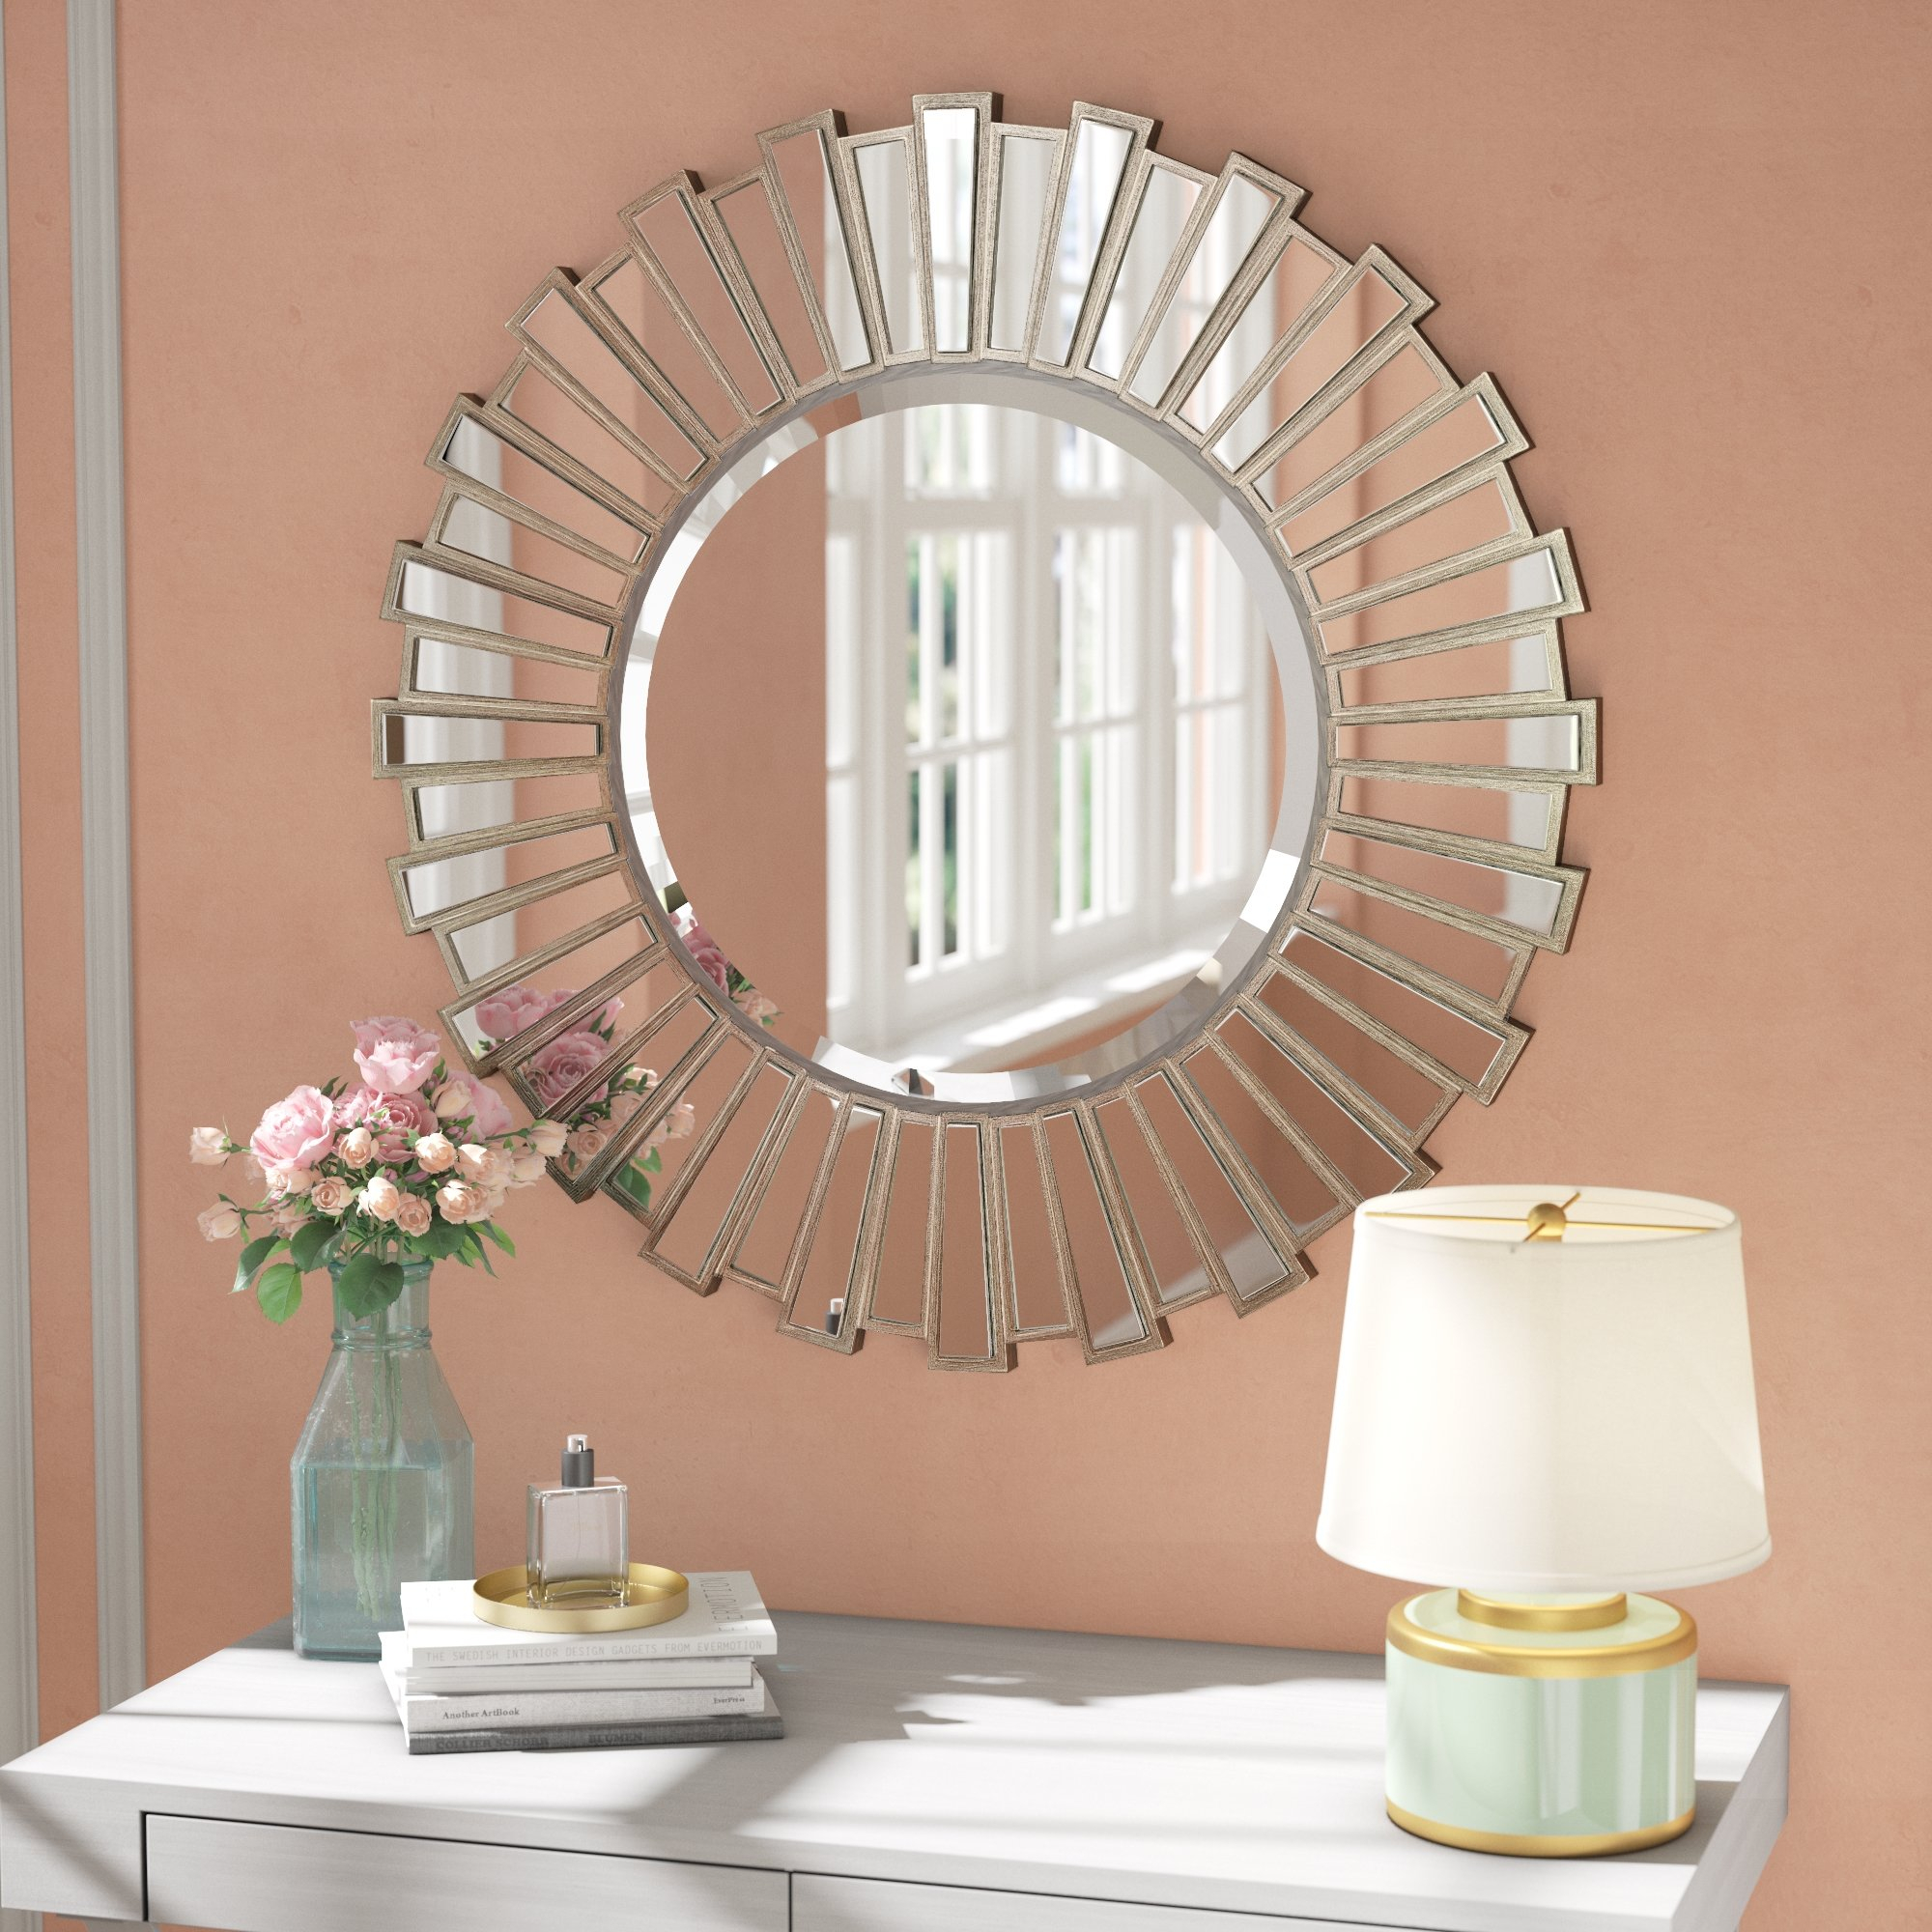 "Large & Oversized (Over 32"" High) Sunburst Mirrors You'll Throughout Jarrod Sunburst Accent Mirrors (View 8 of 30)"